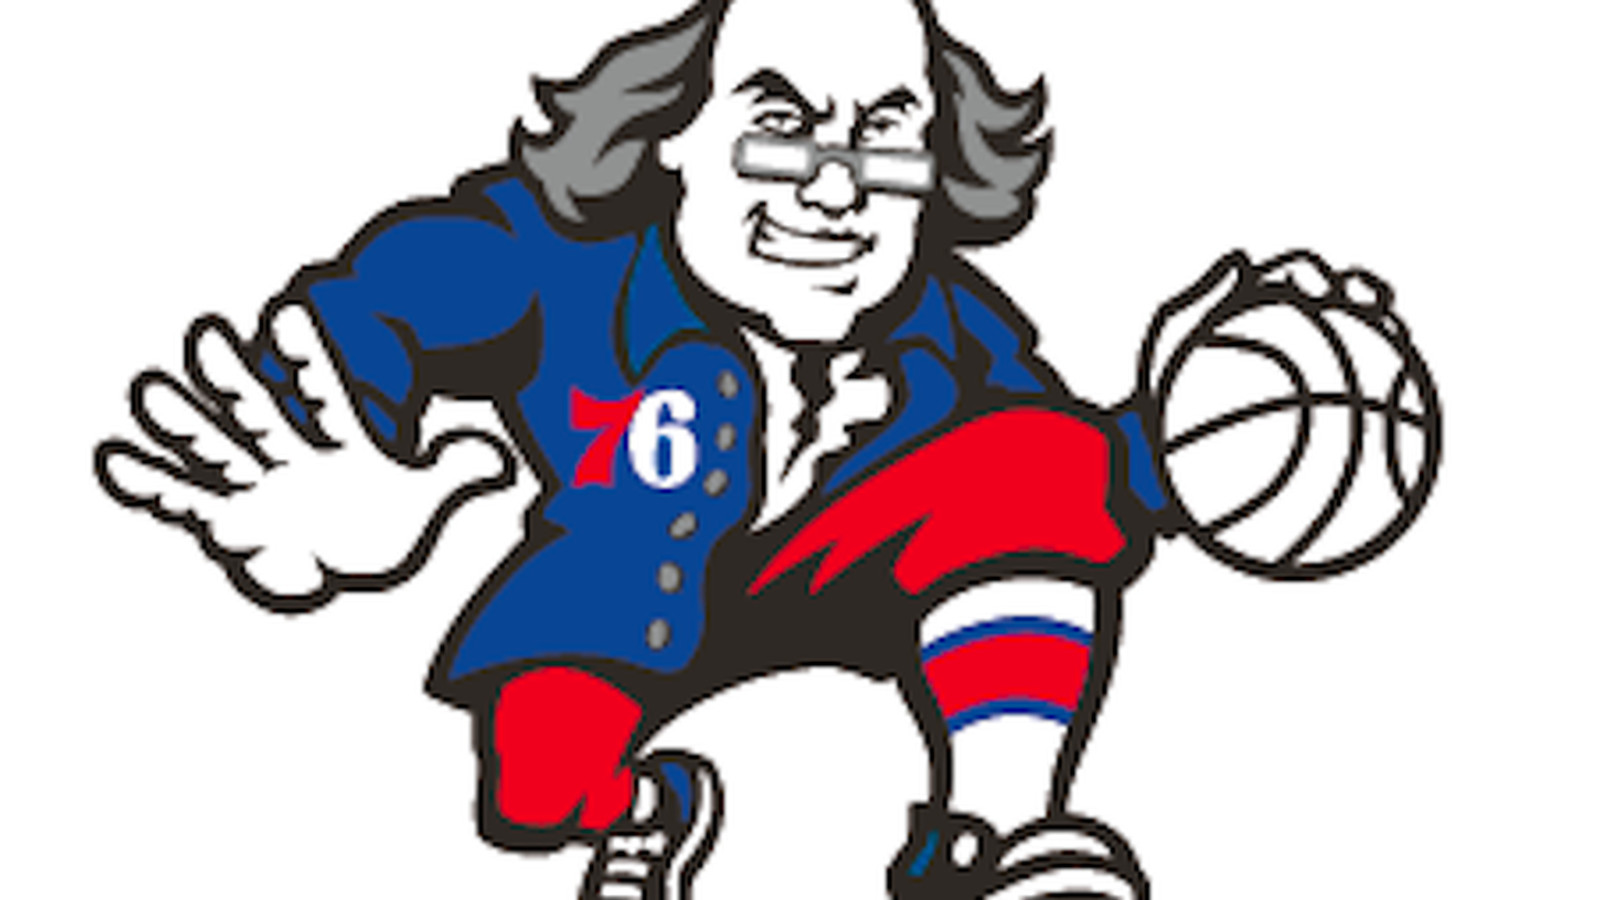 The 76ers Appear To Have A New Dribbling Ben Franklin Logo